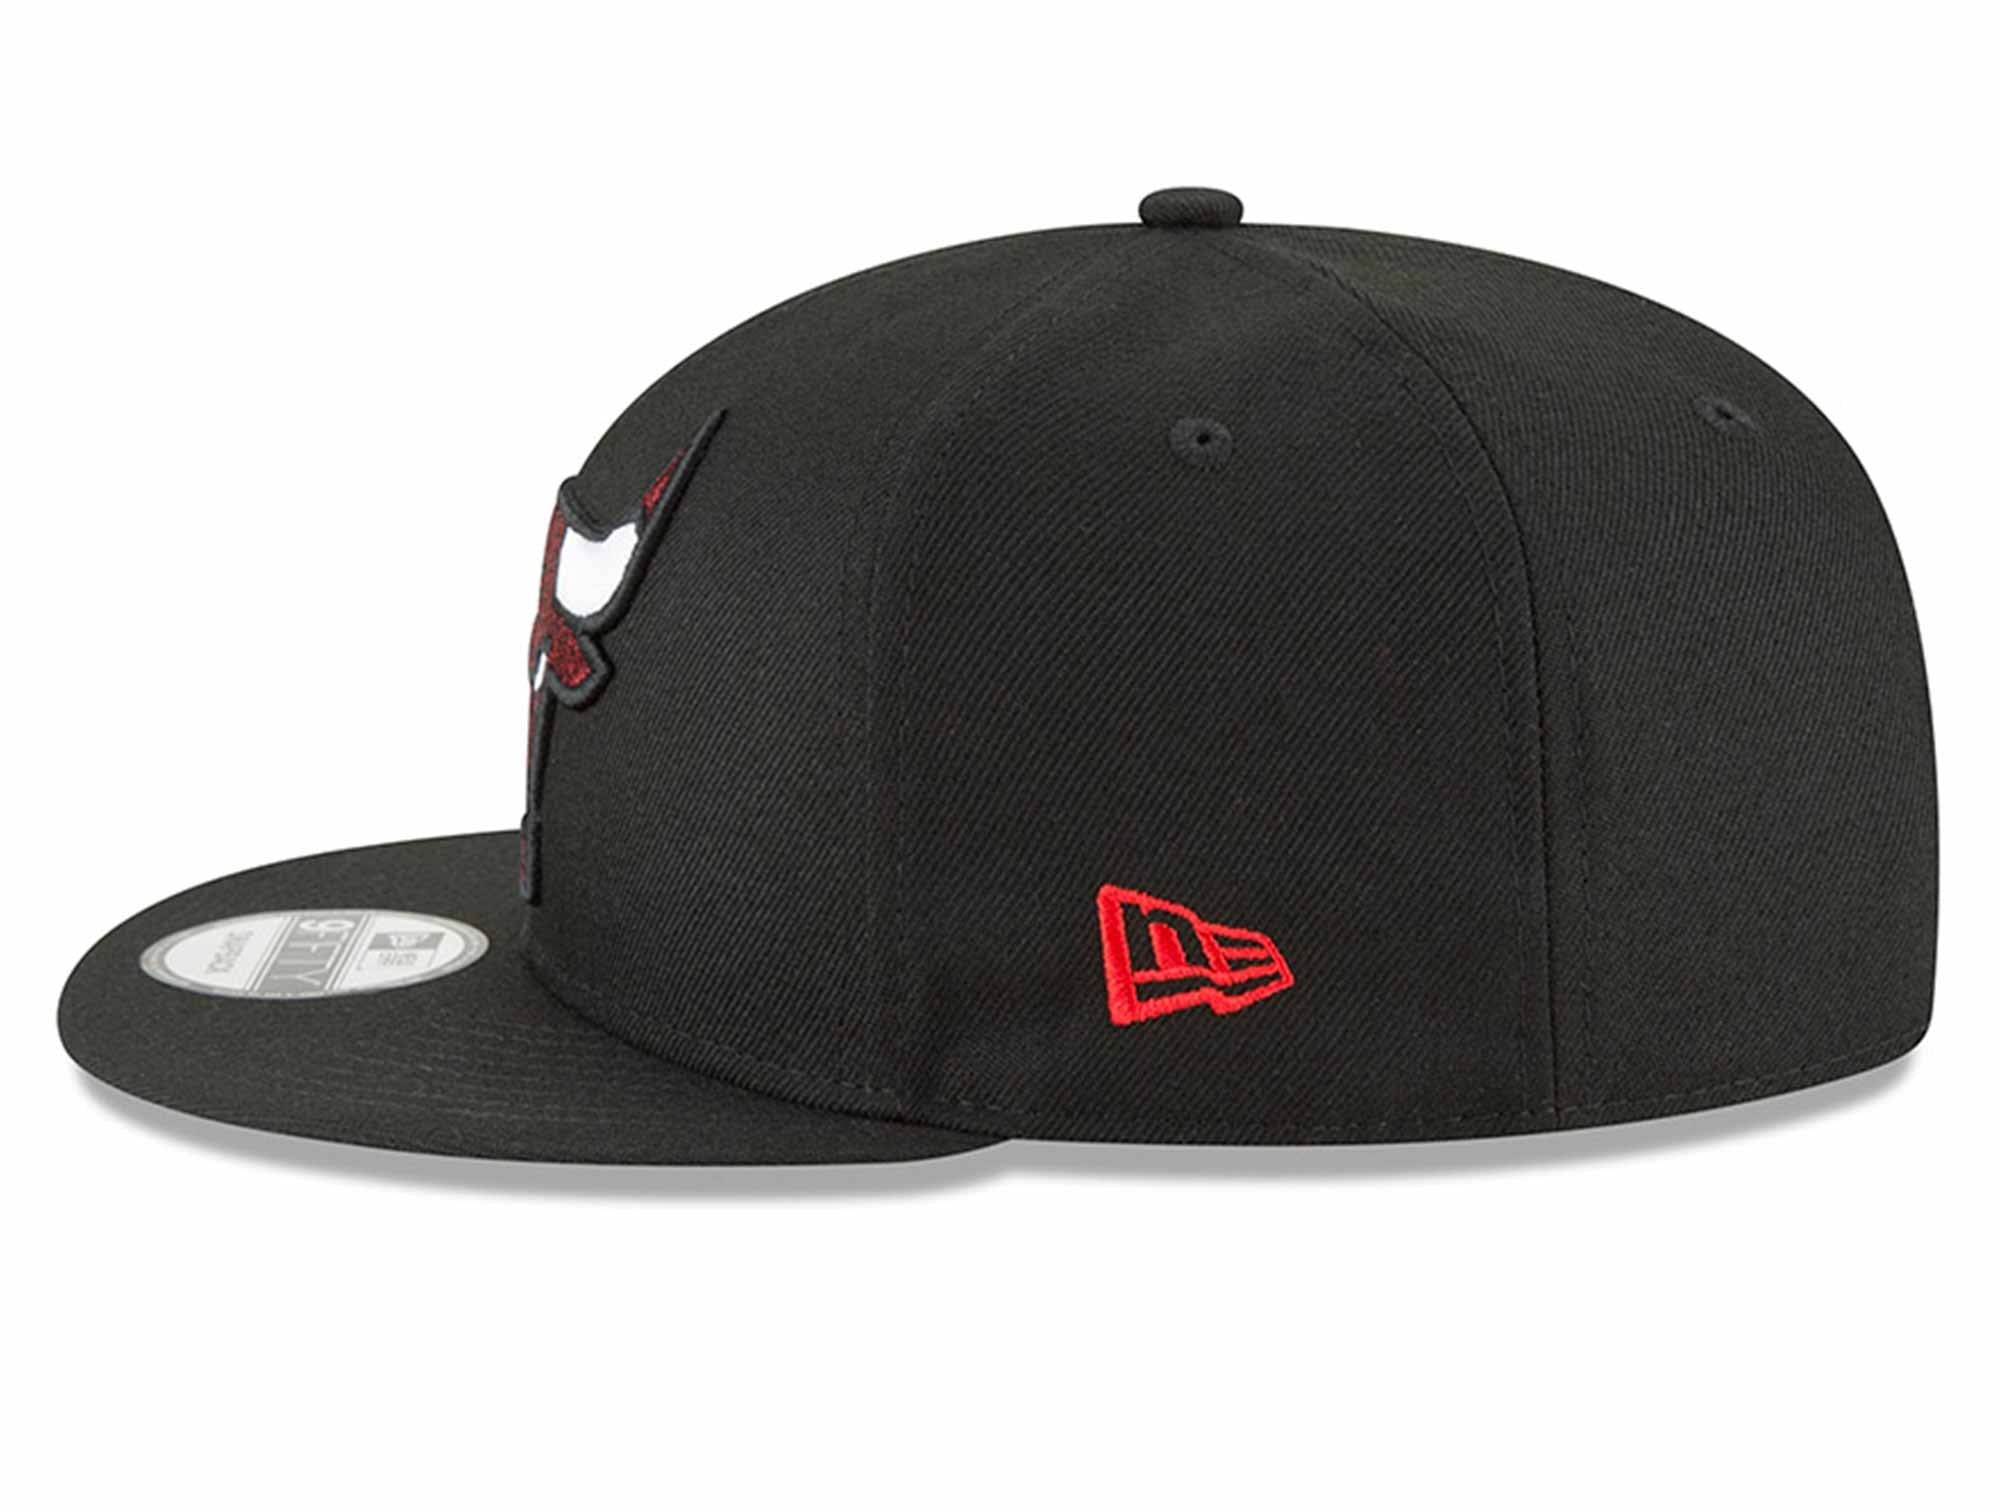 Jockey New Era Squad Twist Snap Chibul Otc Unisex